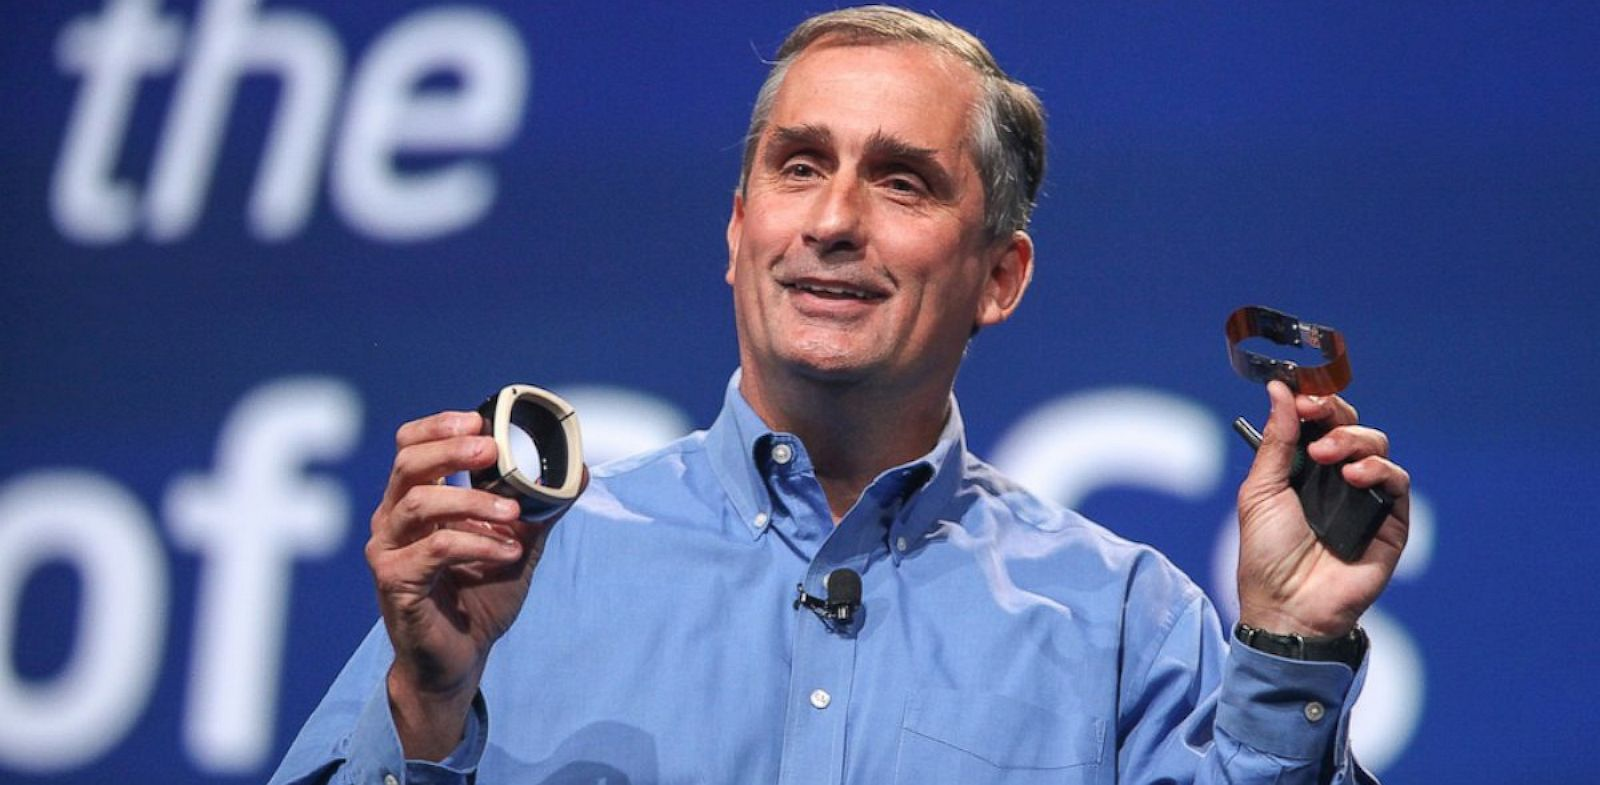 PHOTO: Intel CEO Brian Krzanich shows off prototype devices utilizing Intels new Quark processor.